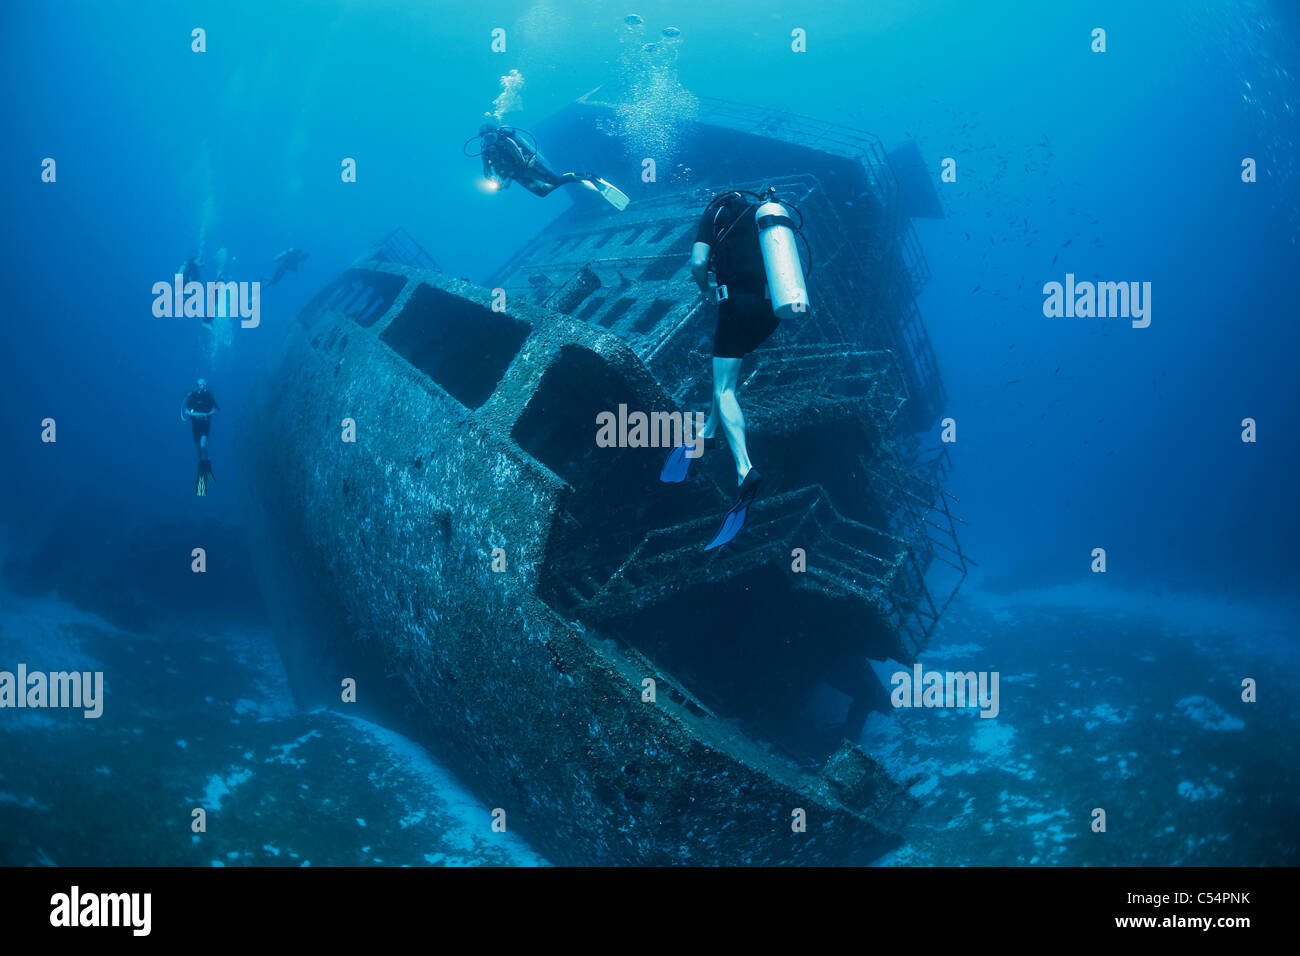 Taucher am Schiffswrack der Odyssey, Diver at the ship wreck - Stock Image